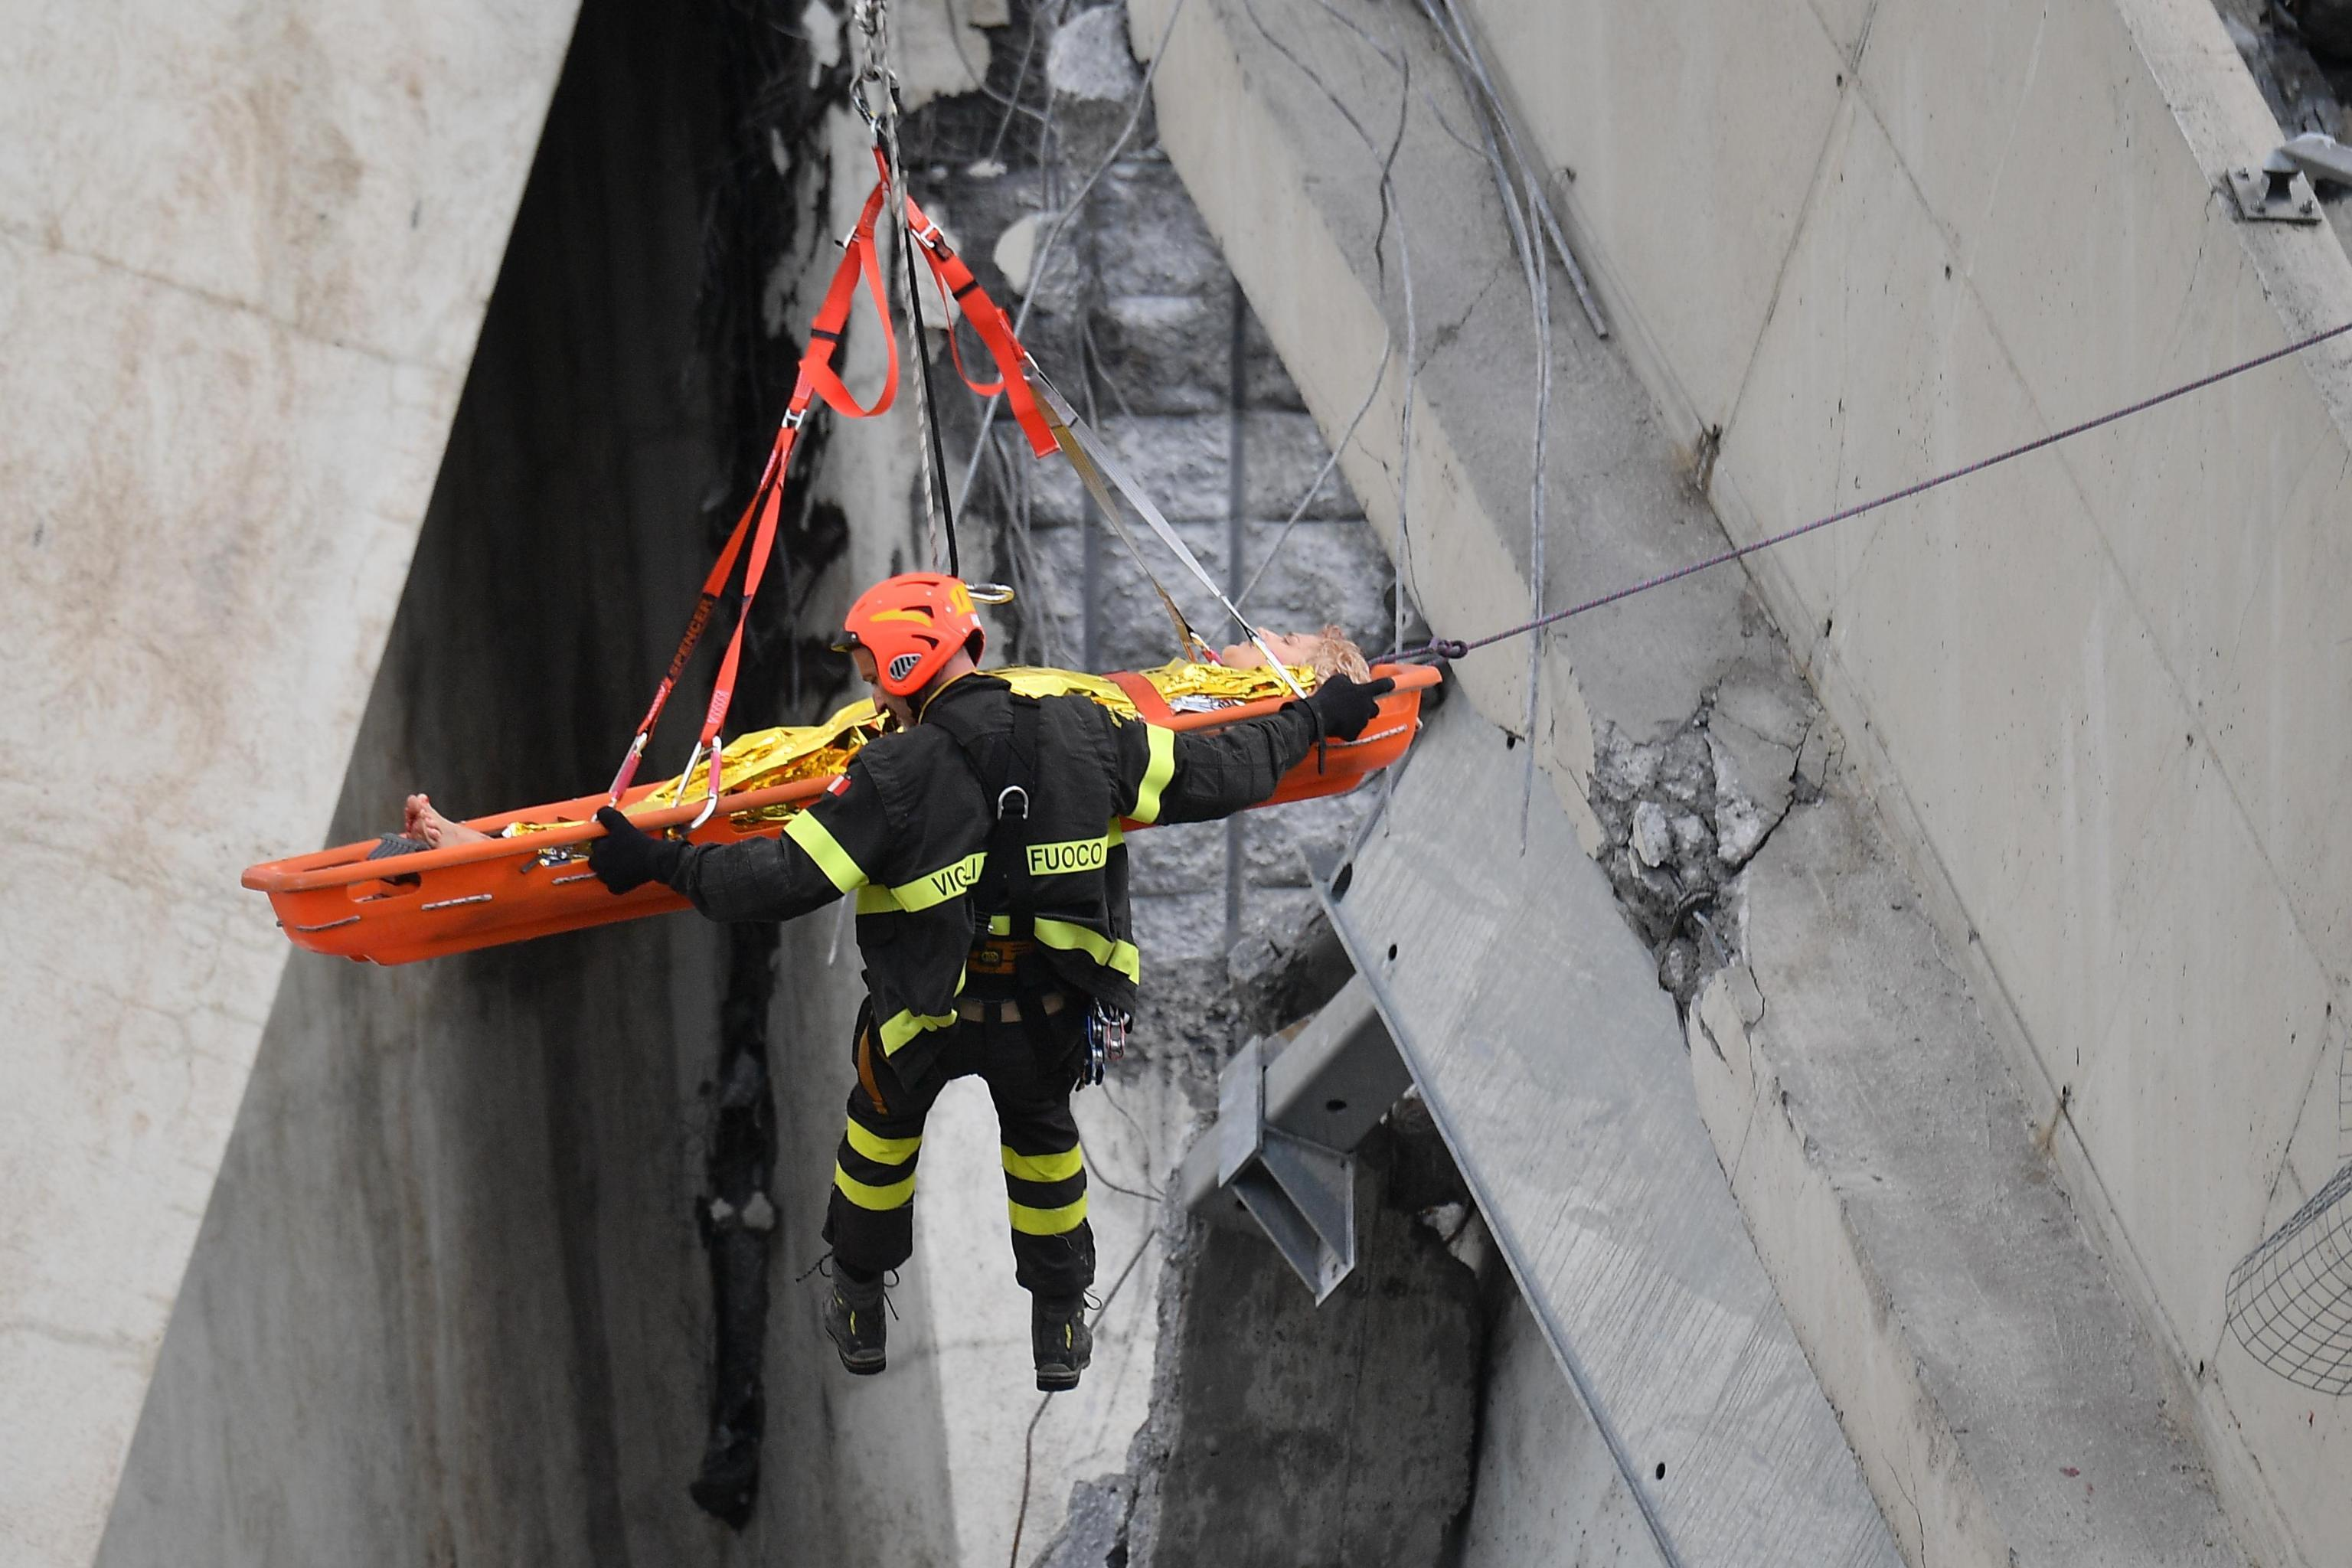 <p>Rescuers recover an injured person after a highway bridge collapsed in Genoa, Italy, Aug. 14,2018. (Photo: Luca Zennaro/EPA-EFE/REX/Shutterstock) </p>